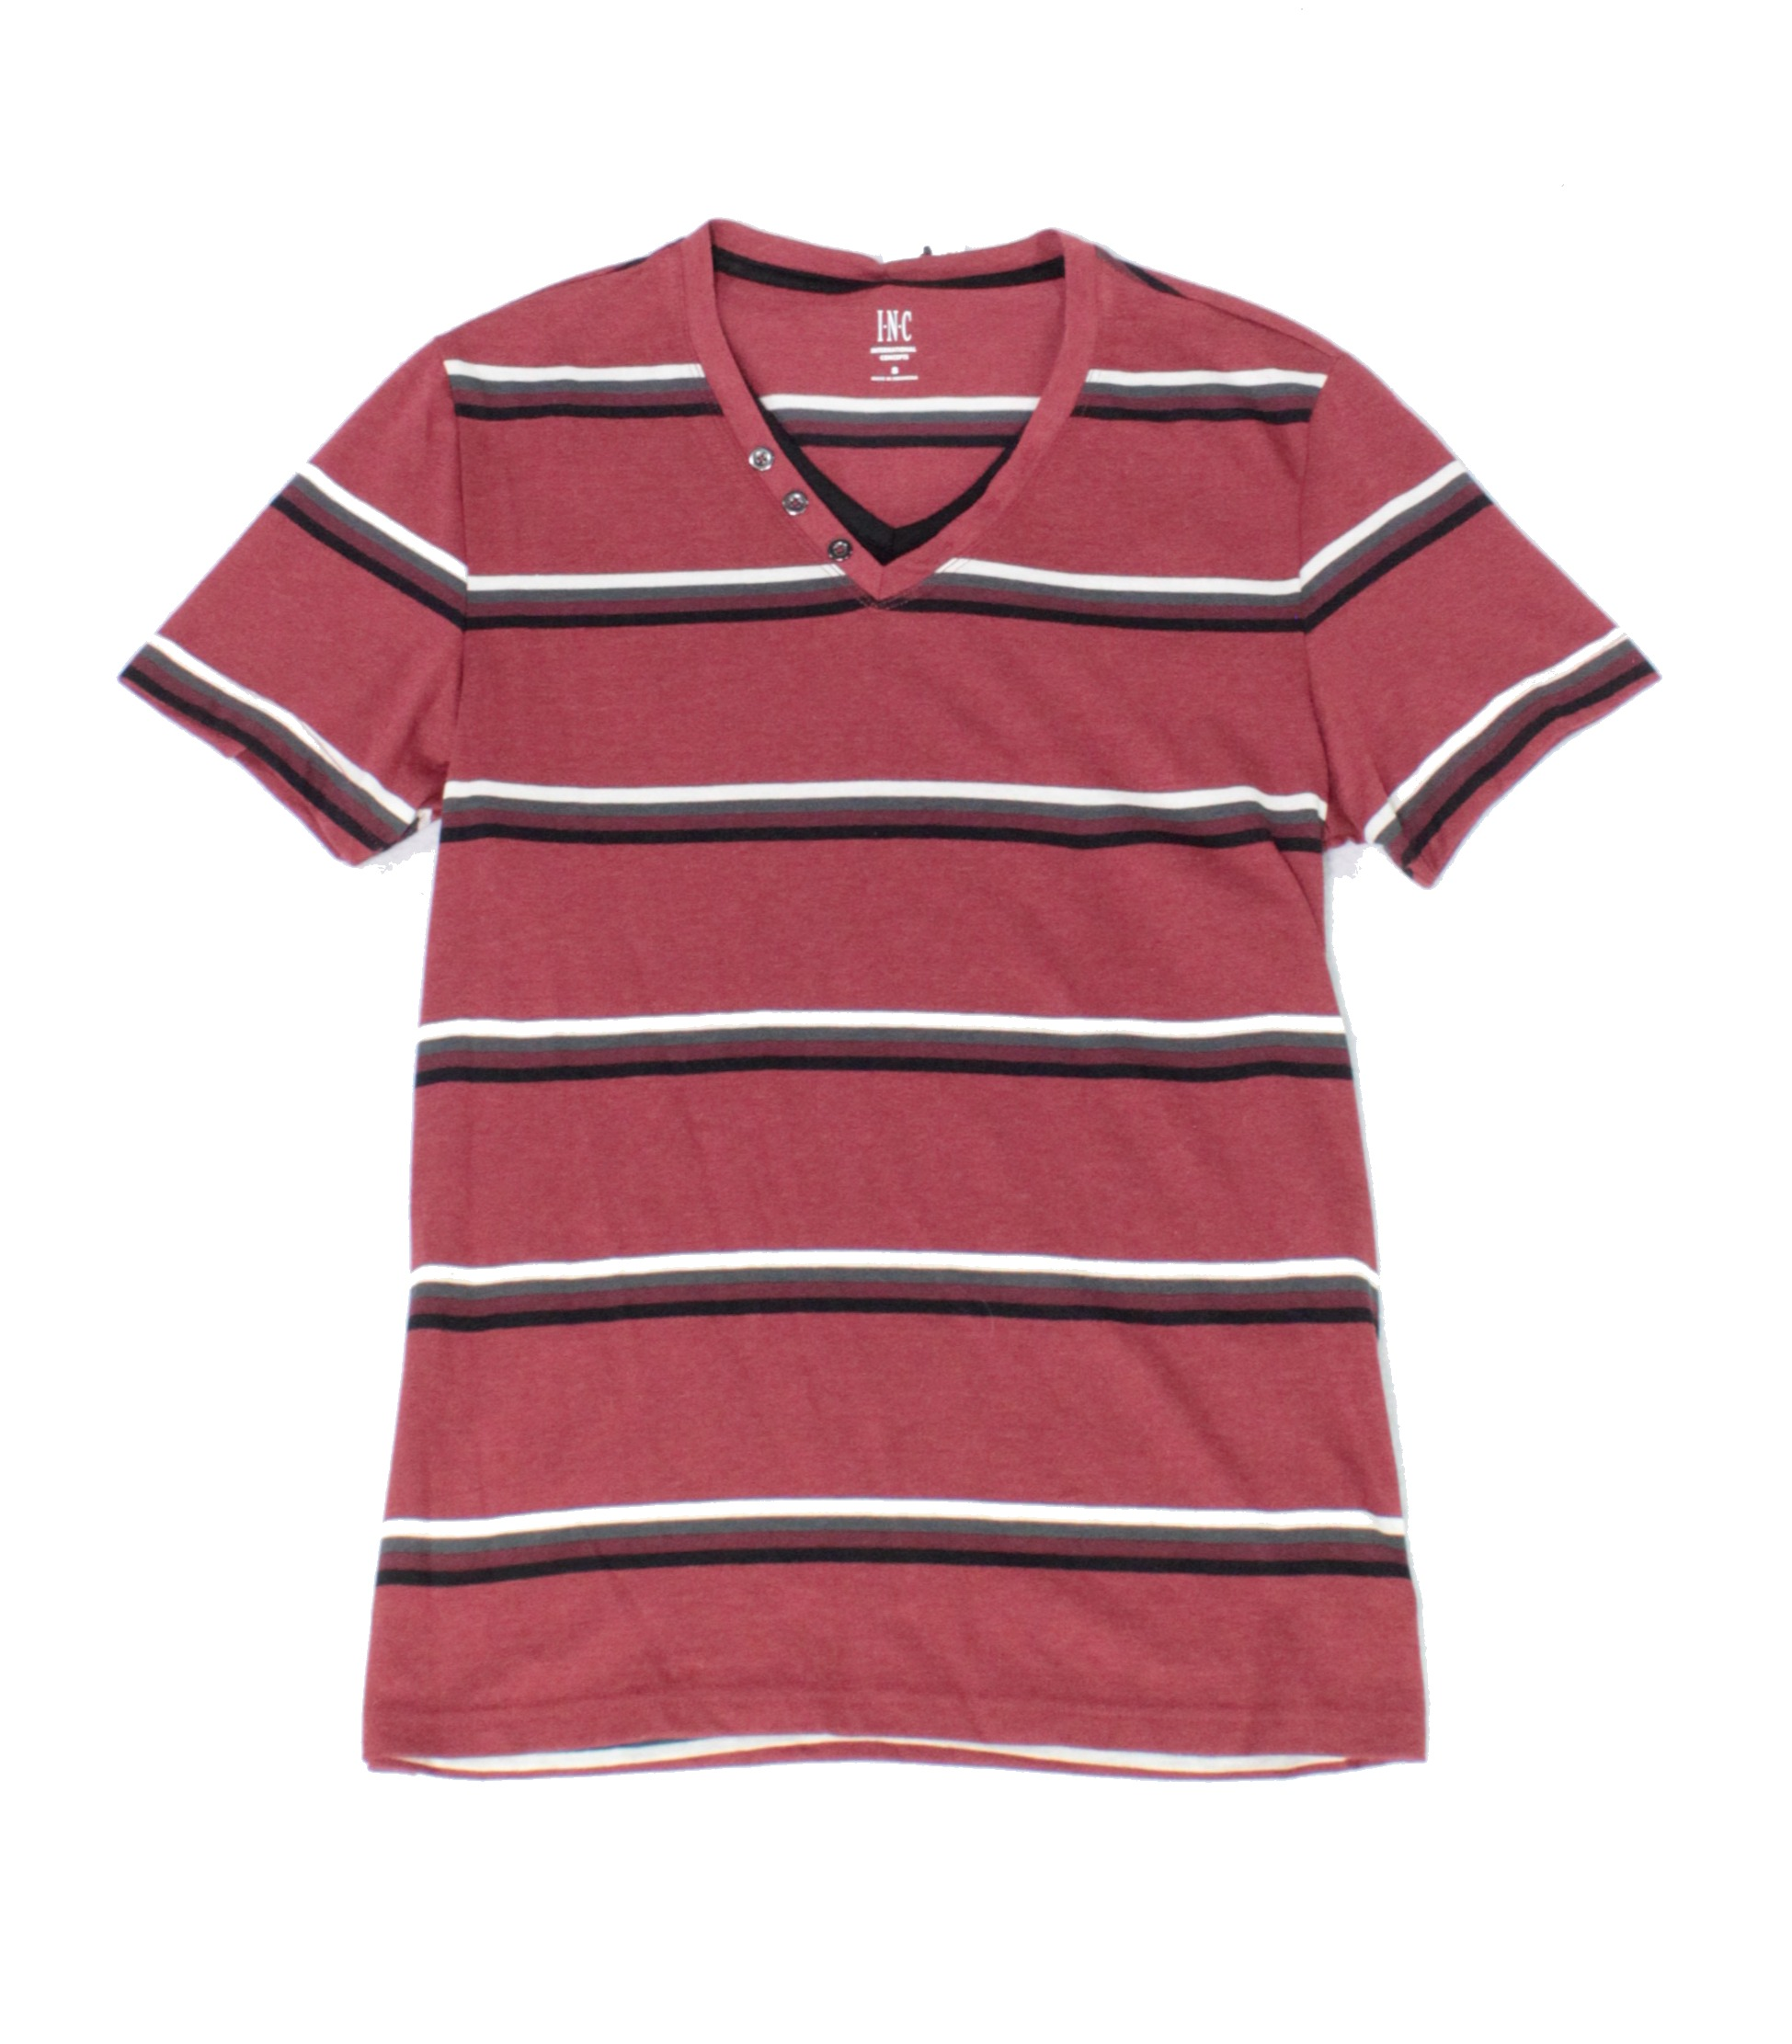 New-INC-Mens-Shirt-Red-Size-Small-S-Stripe-Print-Layered-Look-V-Neck-Tee-134